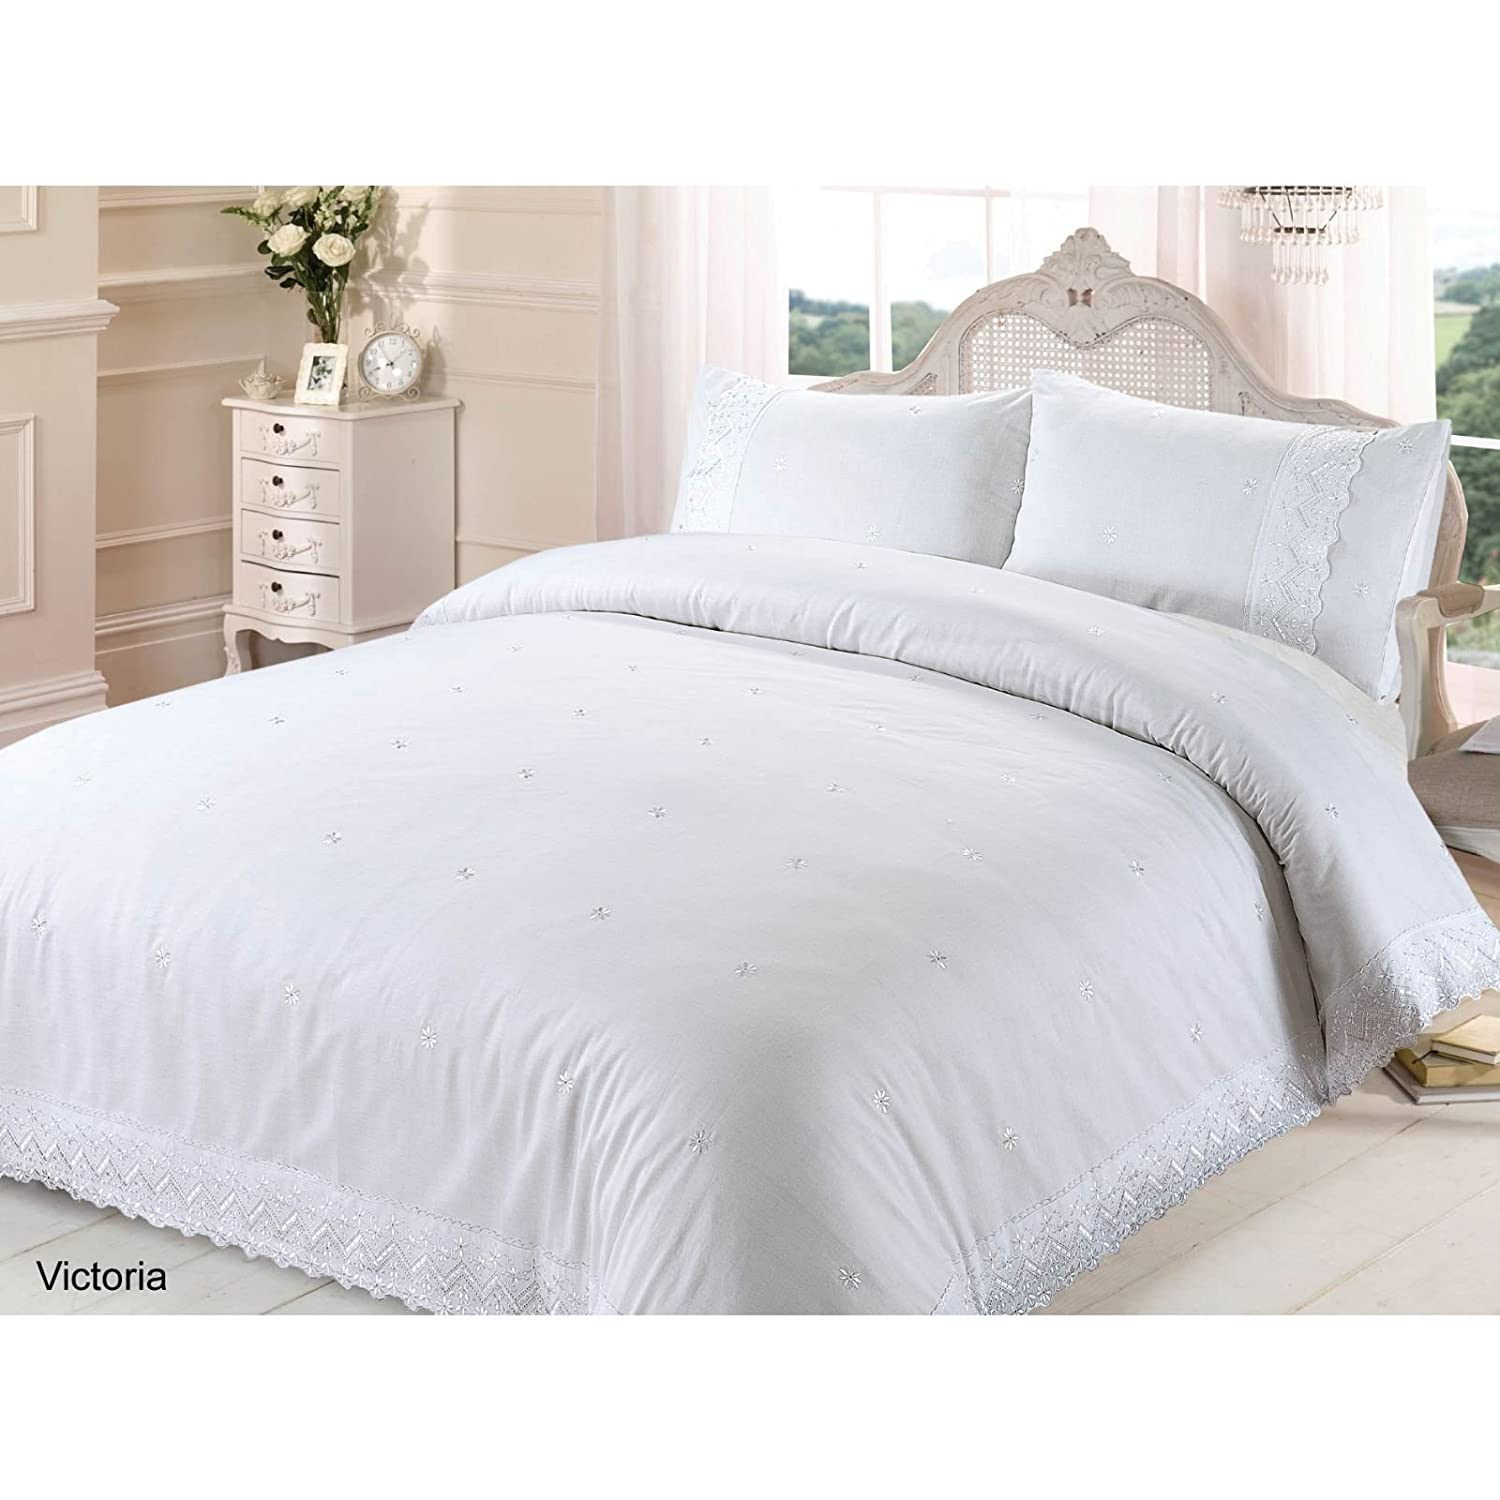 Housse de couette blanche brodee remc homes for Couette blanche